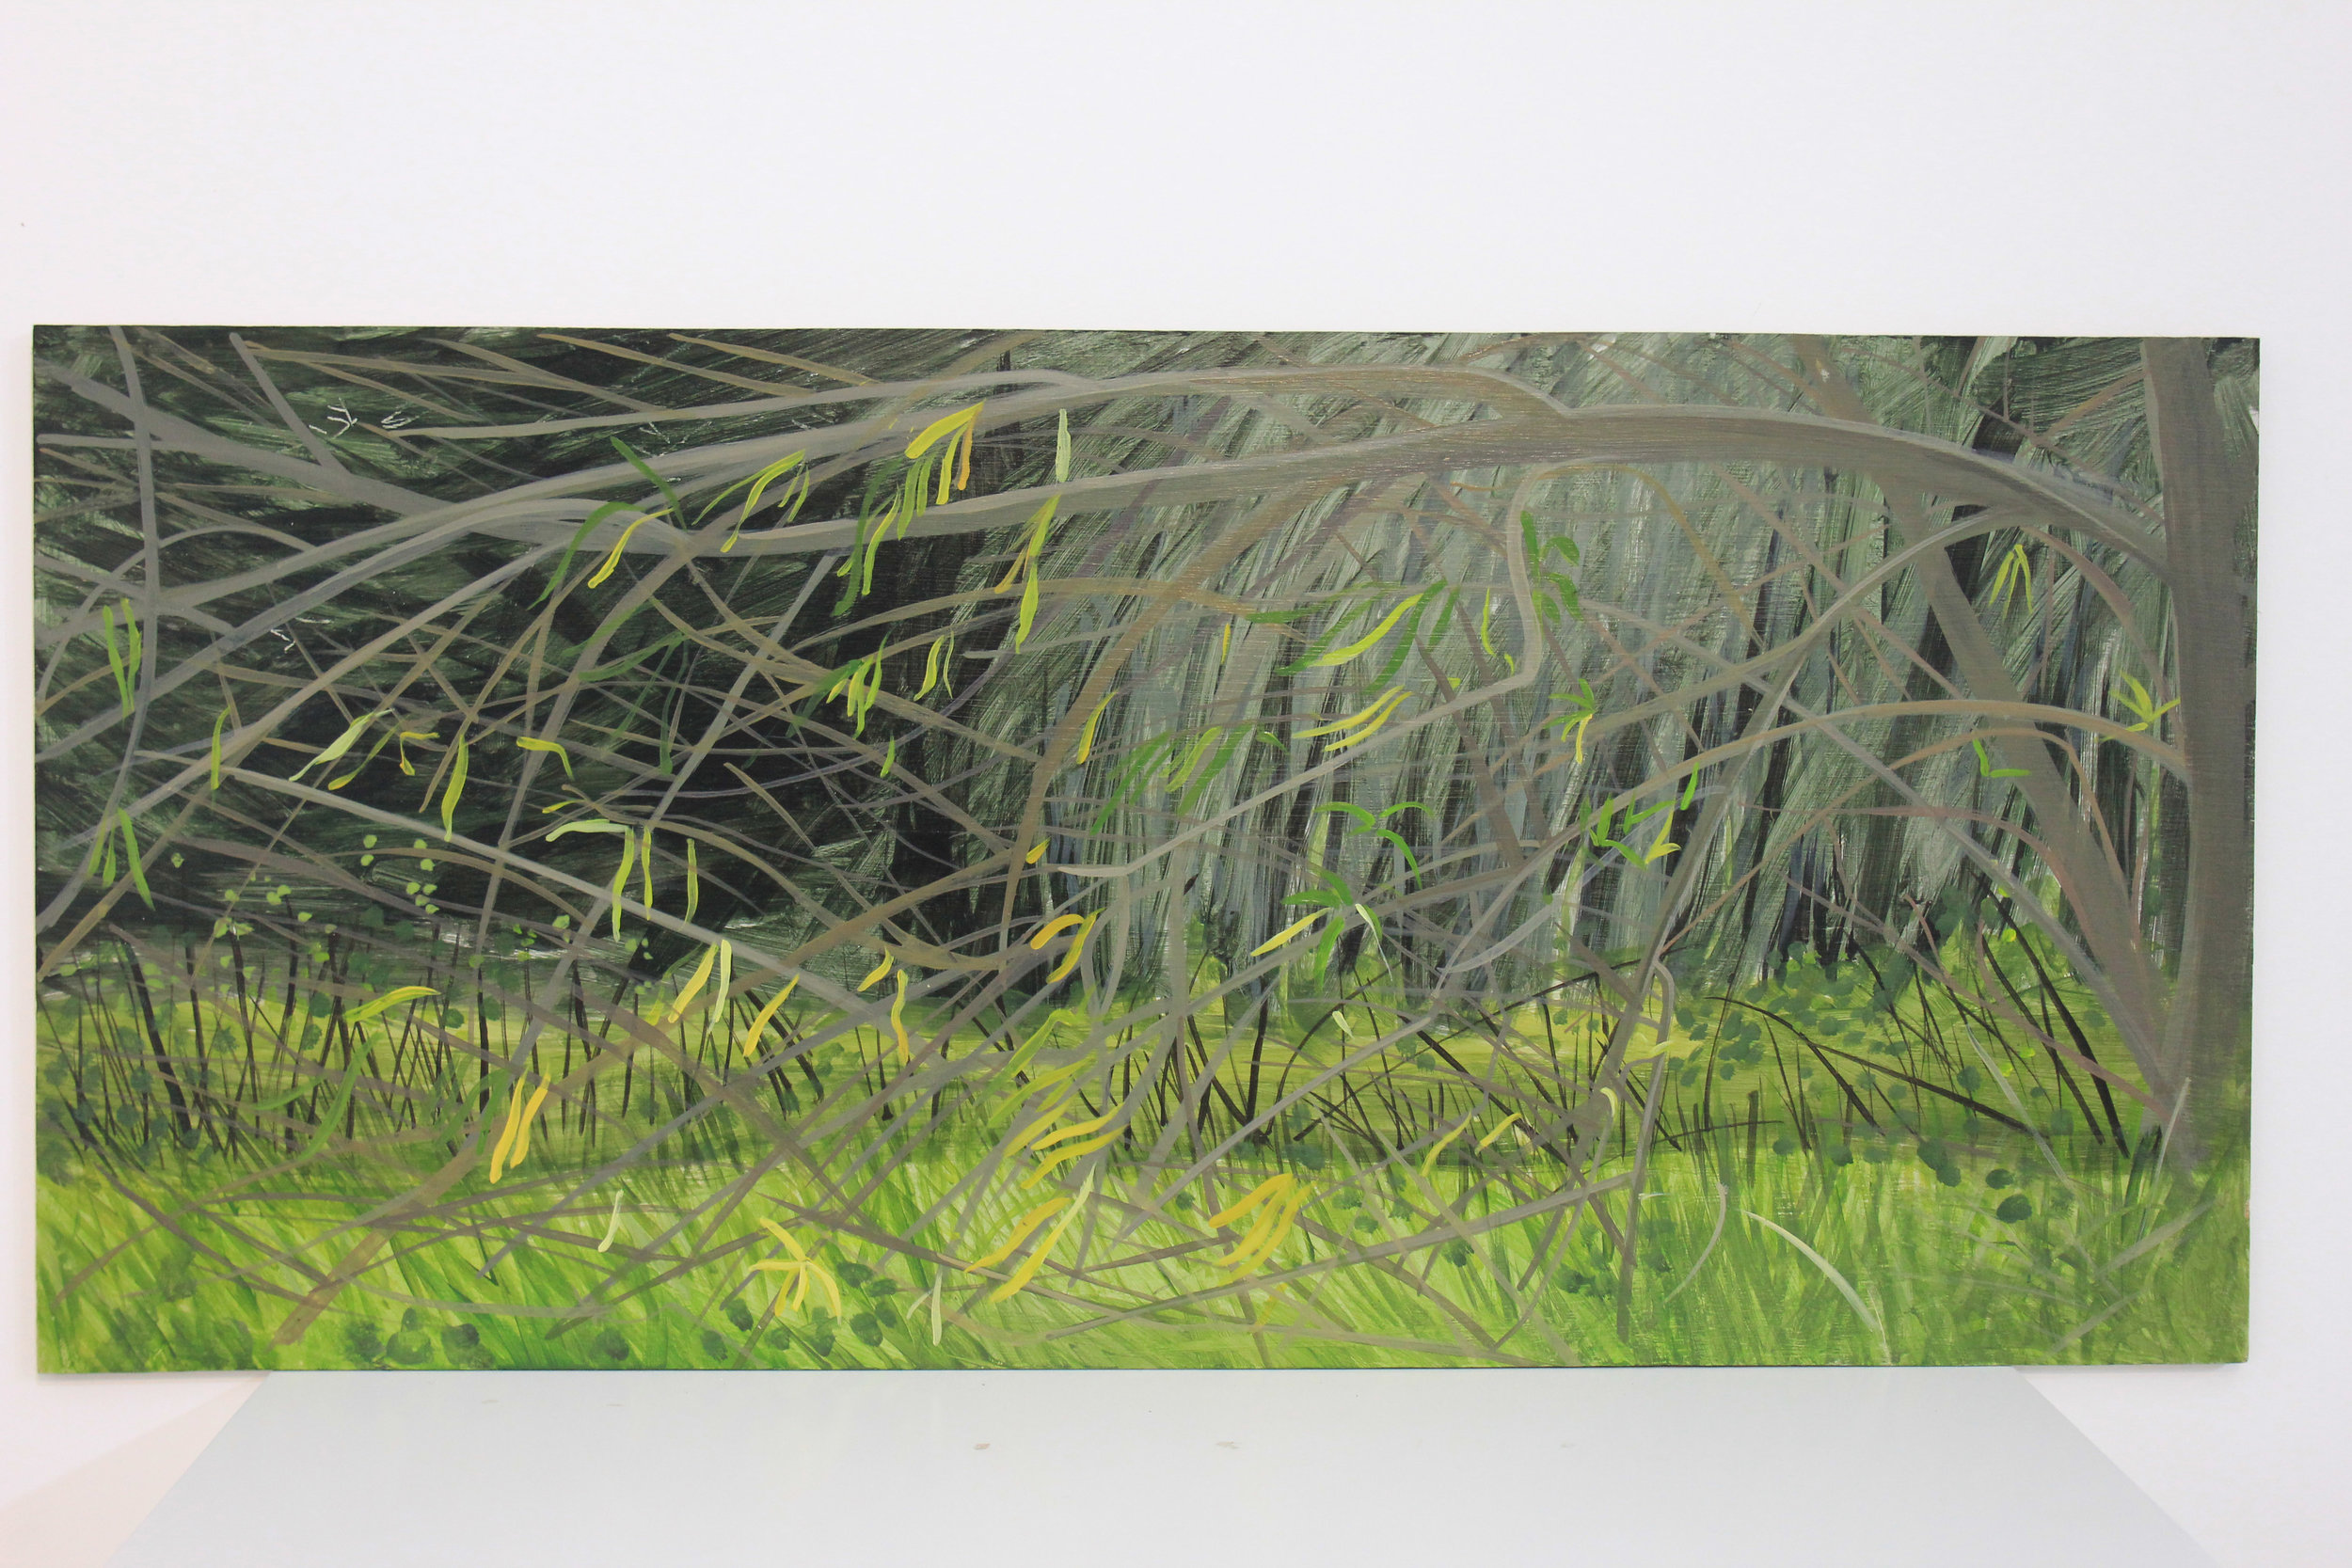 November Willows En Plein Air         Acrylic on Board 2017    80cm x 40cm  This painting is available for sale, please contact the artist for price and further details.